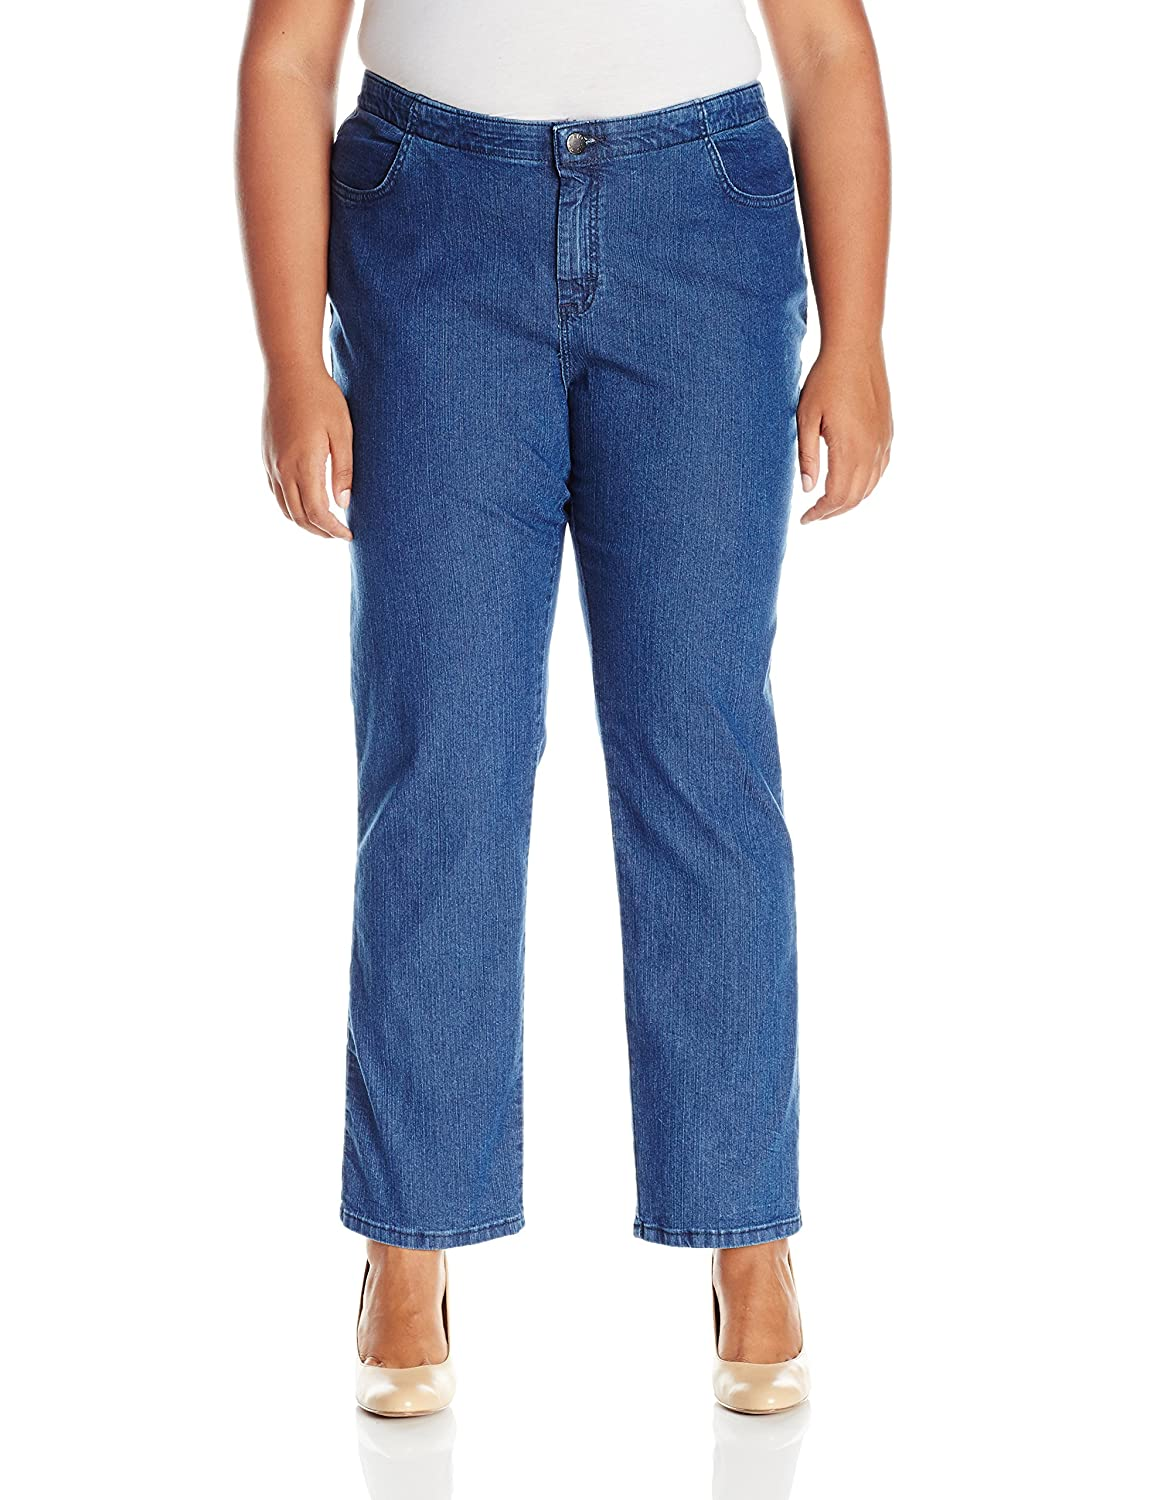 Riders by Lee Indigo Women's Plus Size Comfort Collection Straight Leg Jean,